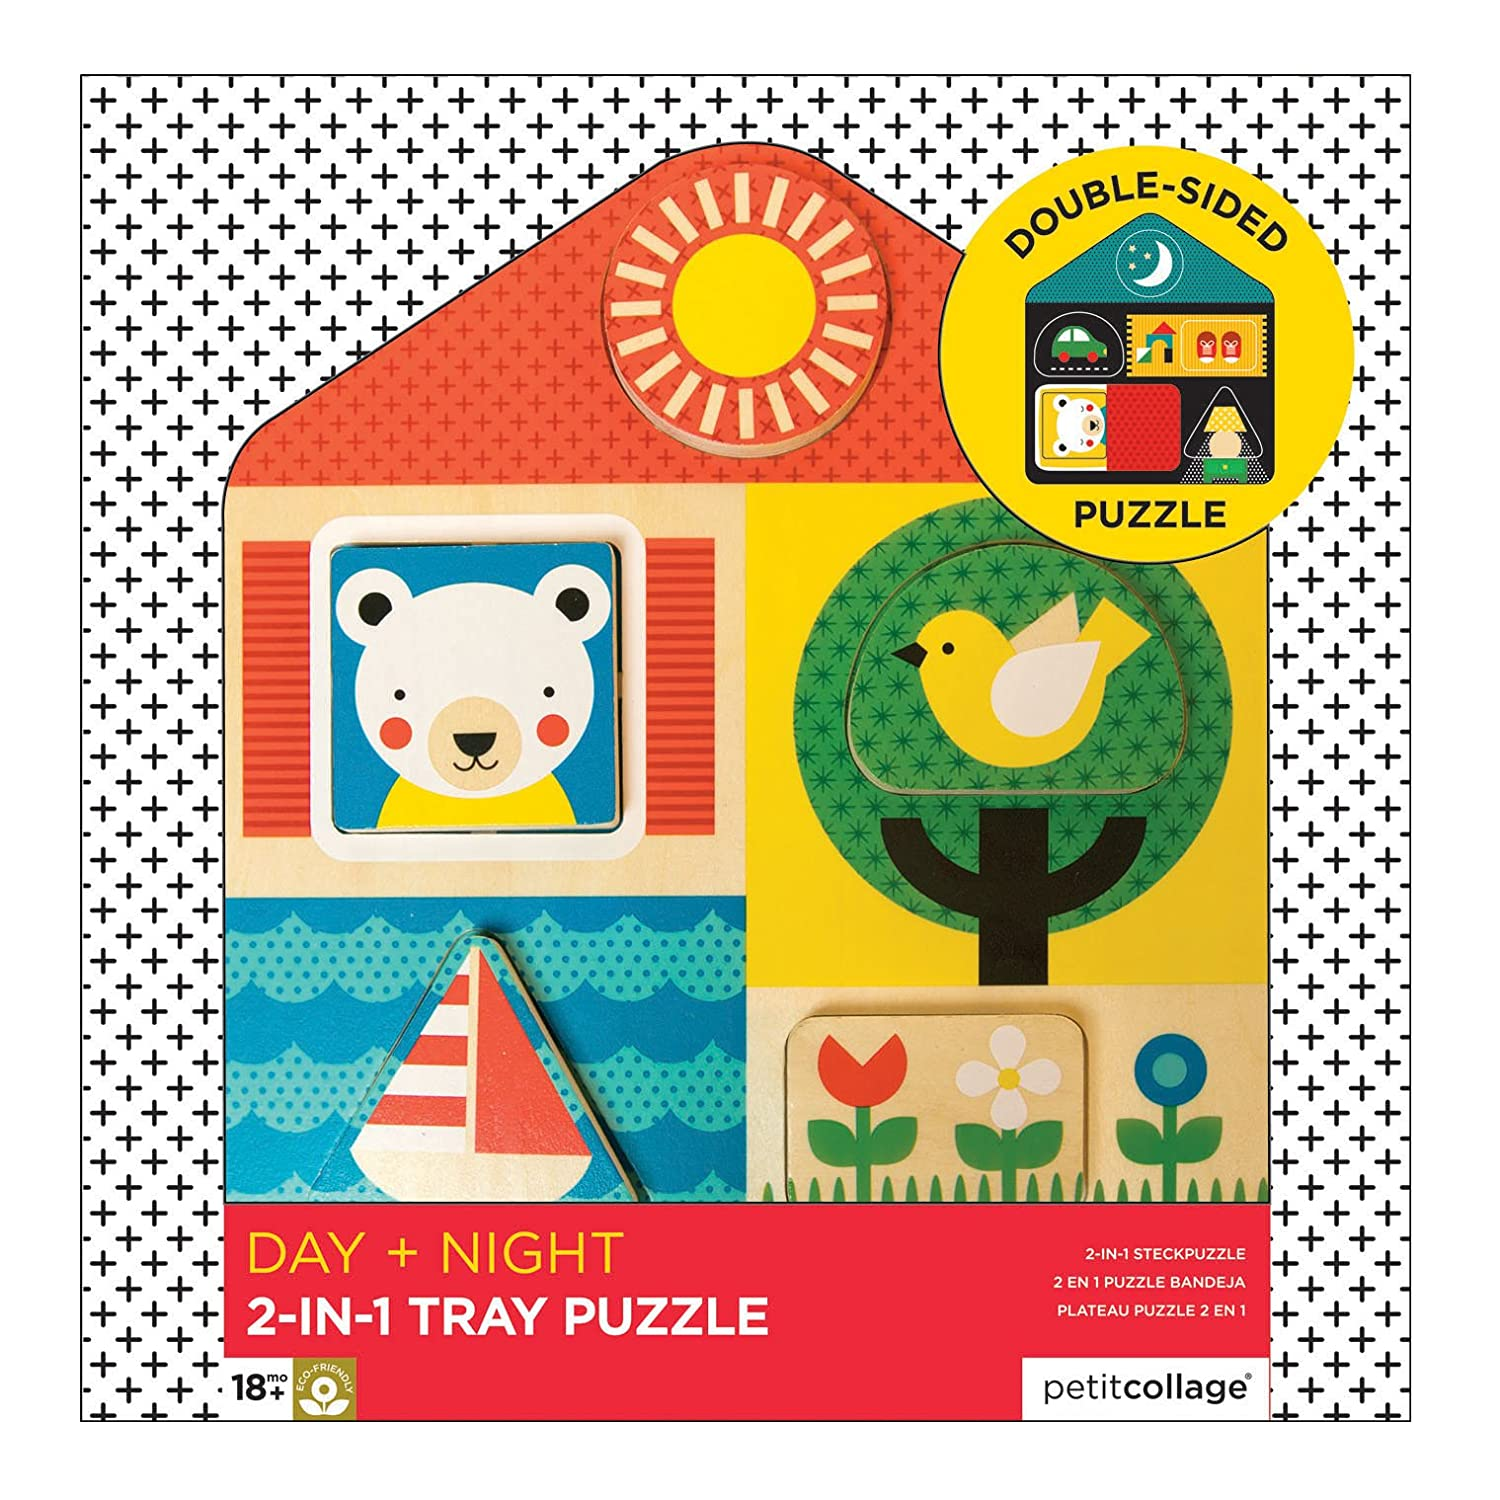 Amazon.com : Petit Collage 2-in-1 Double-Sided Wooden Tray Puzzle, Day and Night : Baby